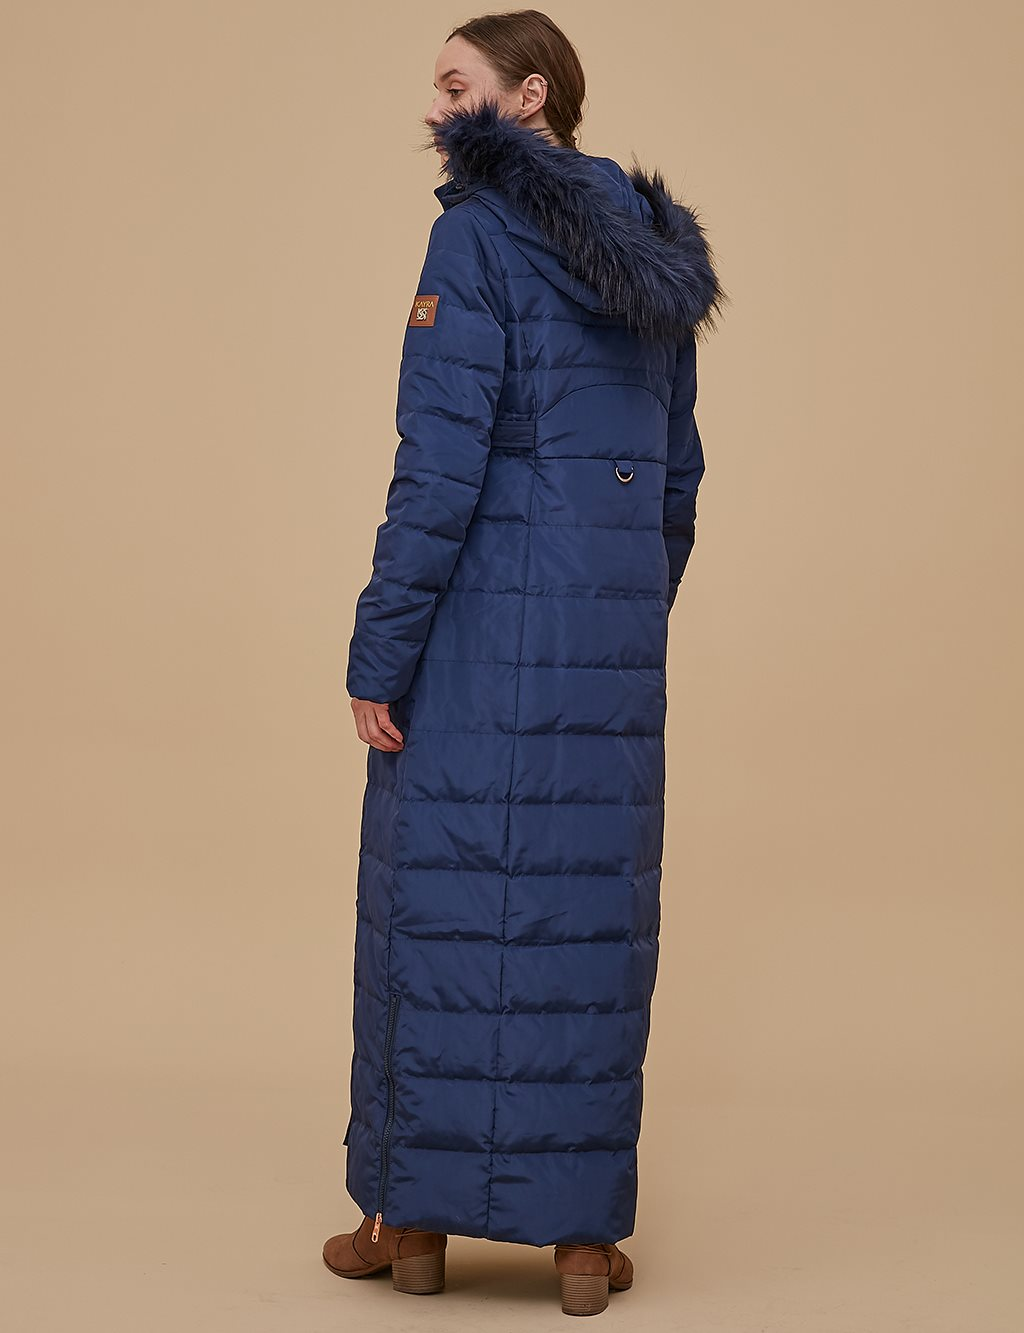 Goose-Quill Coat With Hood Navy A8 27001